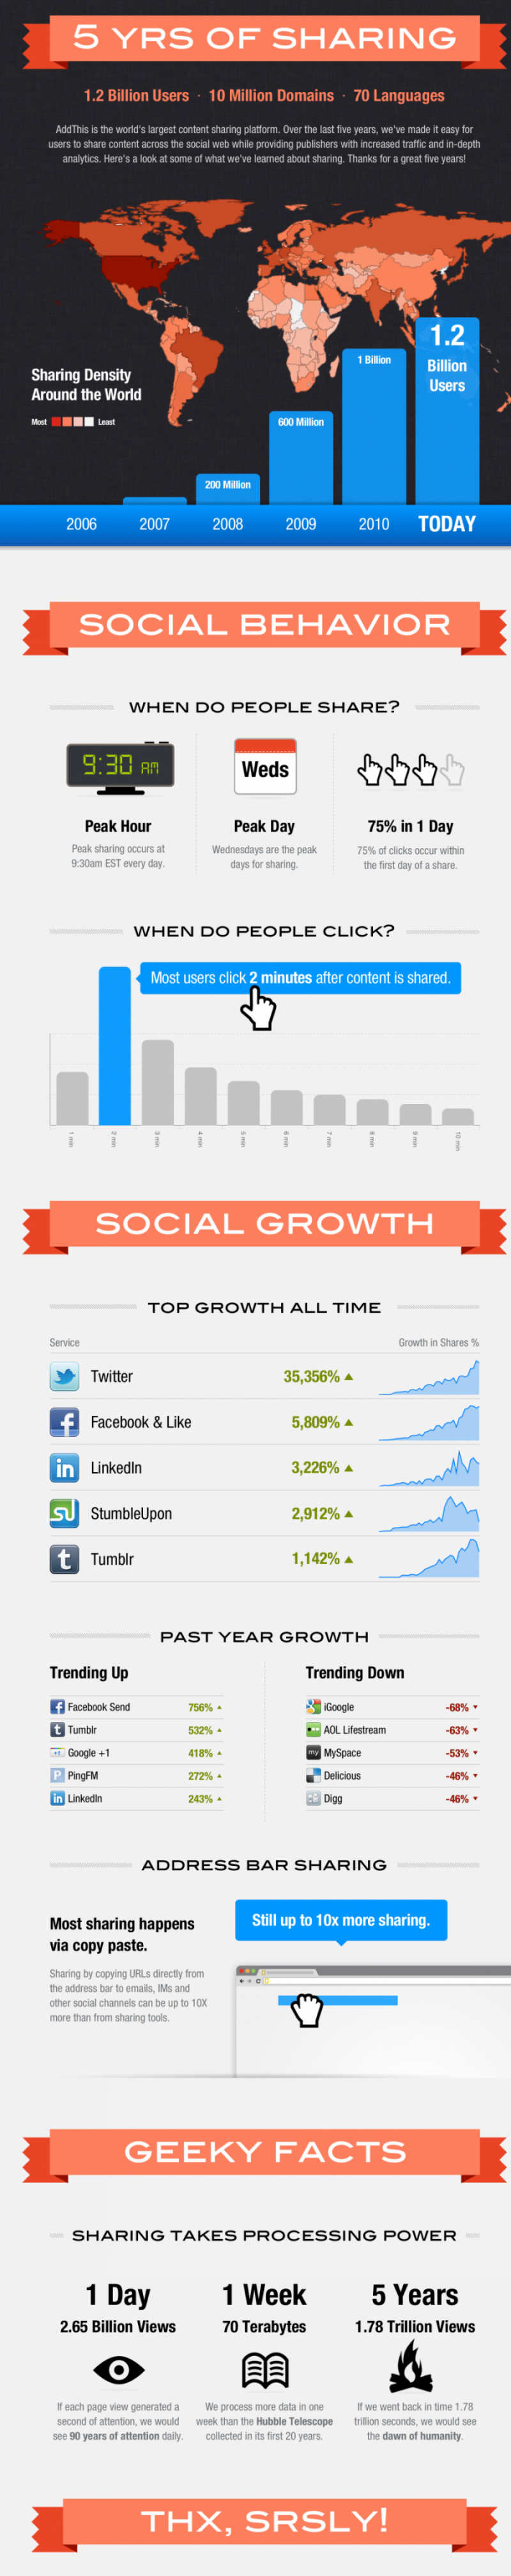 Best time to share on Social Media infographic